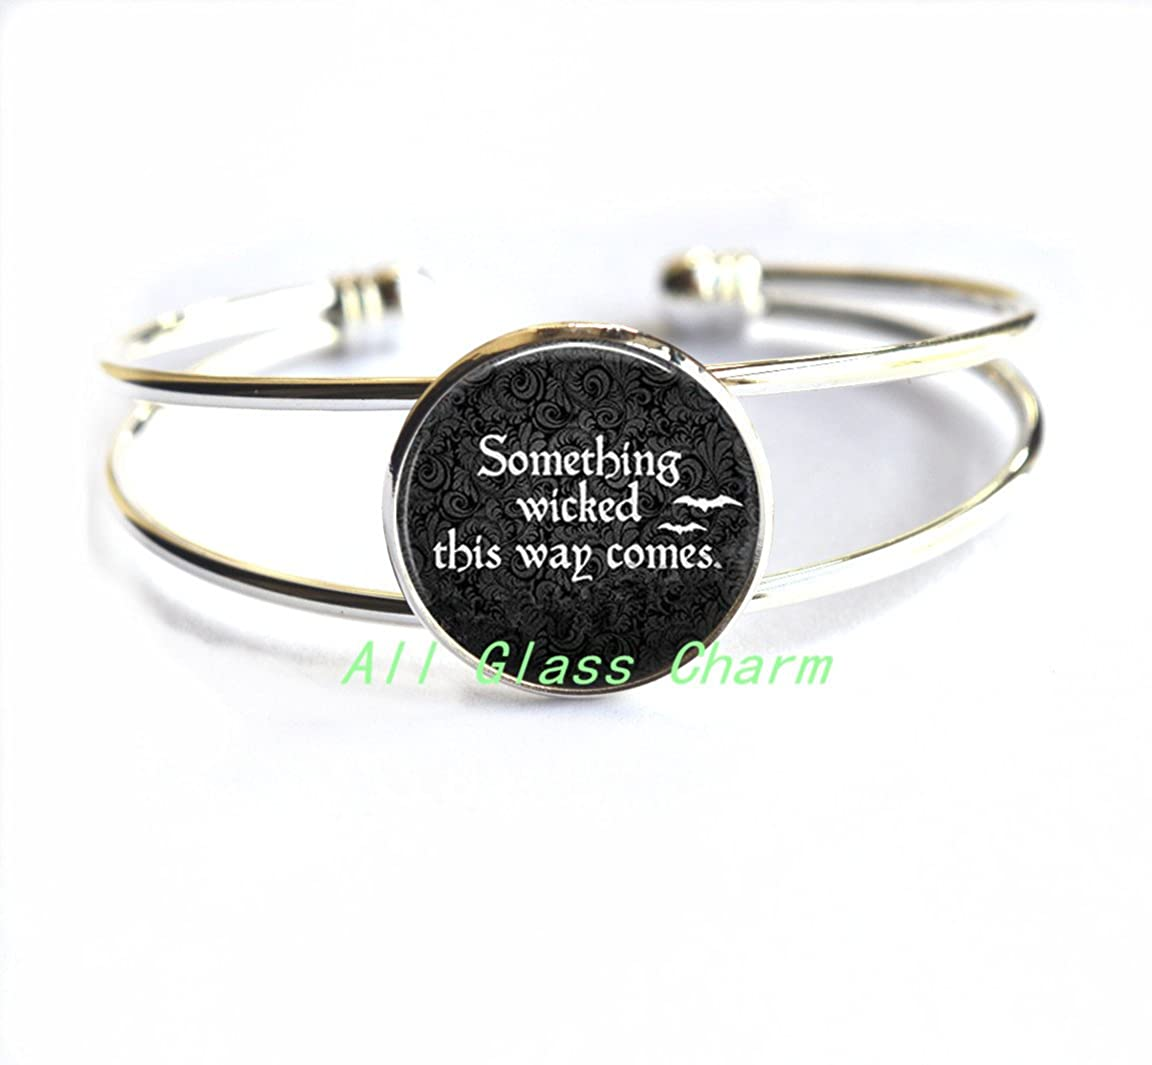 Quote Halloween Quote Bracelet,Halloween Quote Bracelets,AS104 Charming Bracelet,Something Wicked This Way Comes